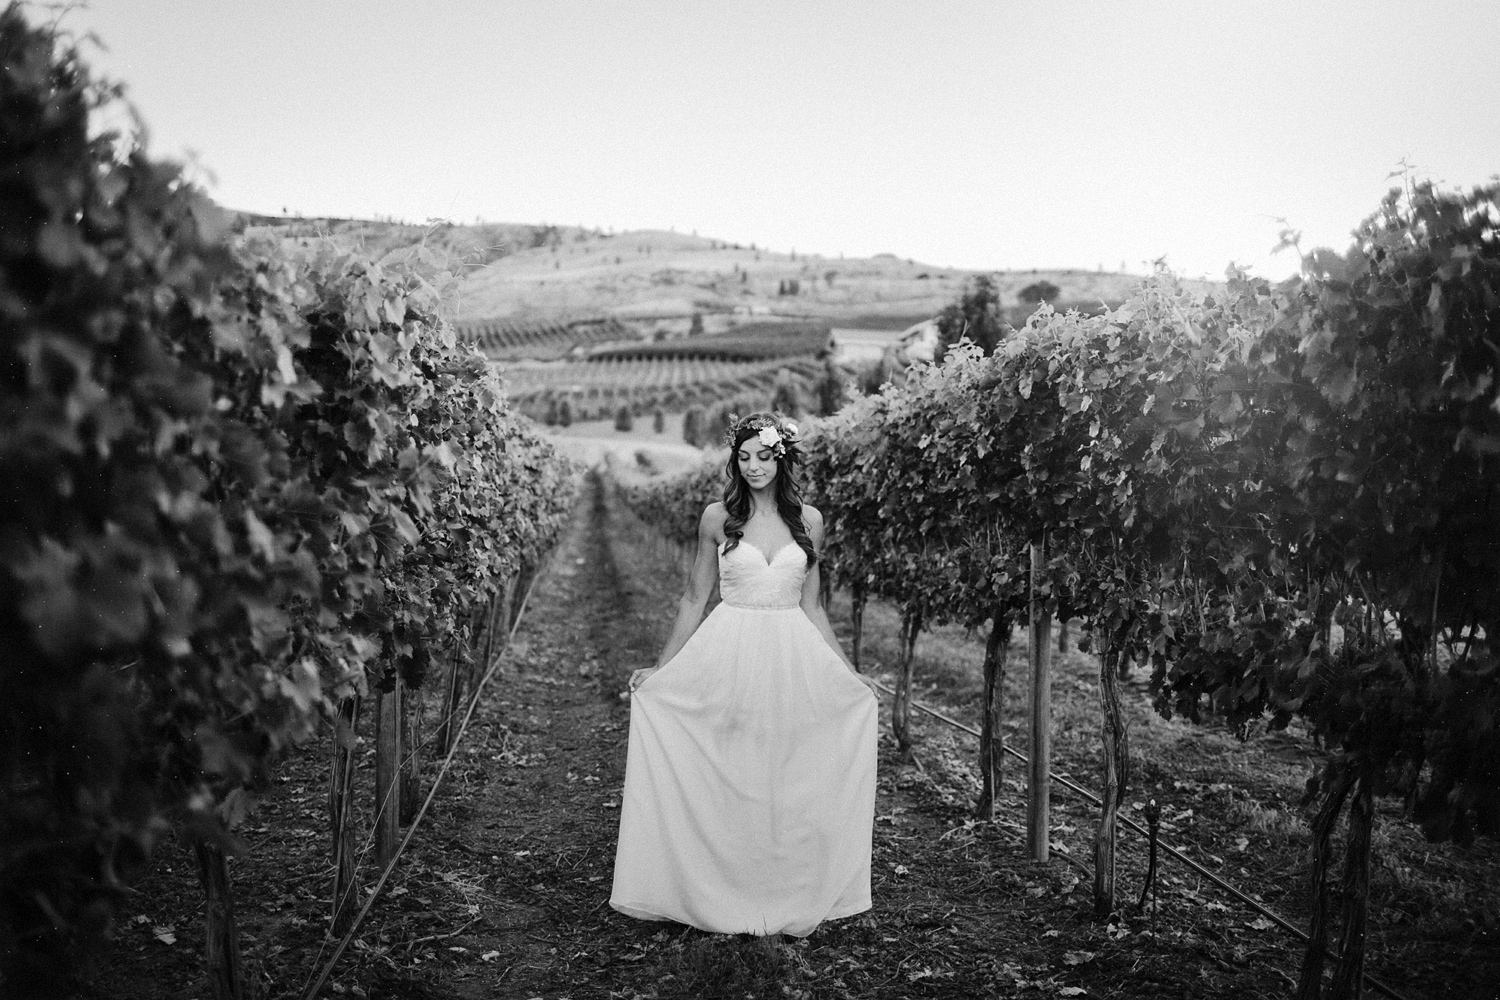 ryan-flynn-seattle-film-photographer-lake-chelan-wedding-0072.JPG